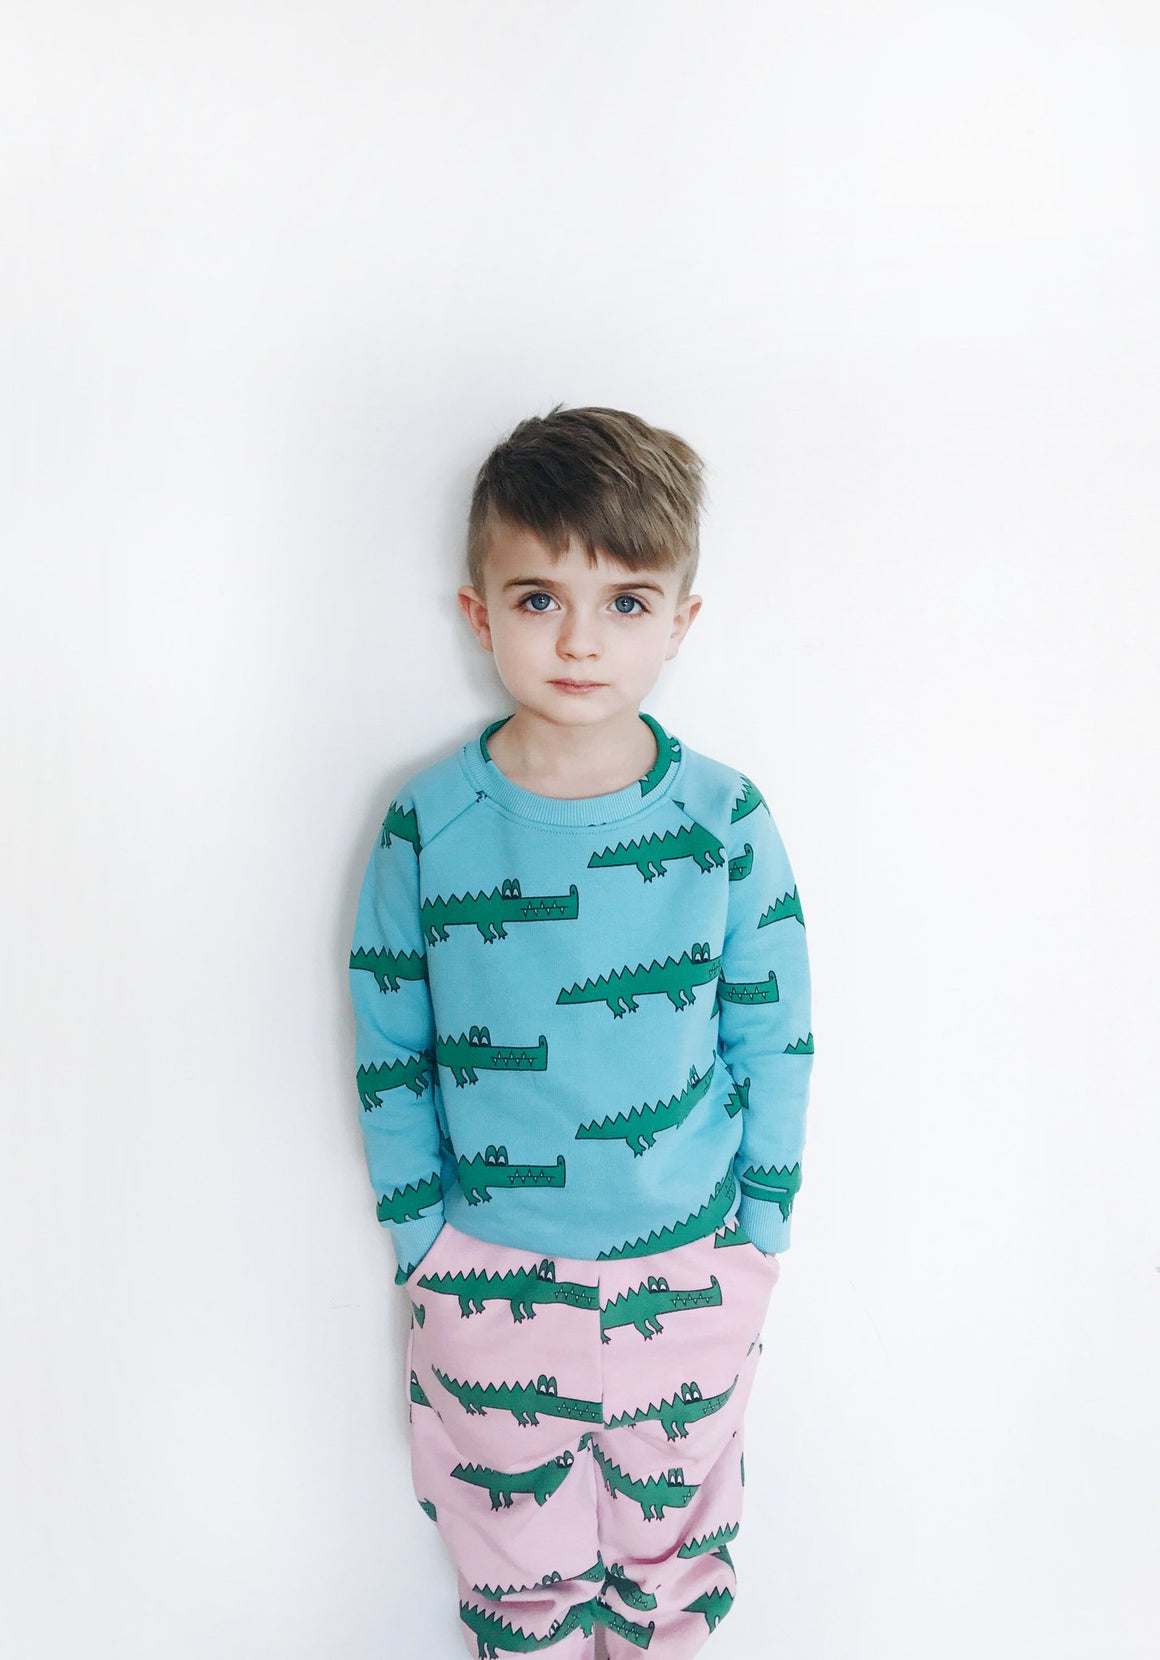 HUGO LOVES TIKI - Sweatshirt- Blue Crocodile - Last One!! Size: 4T